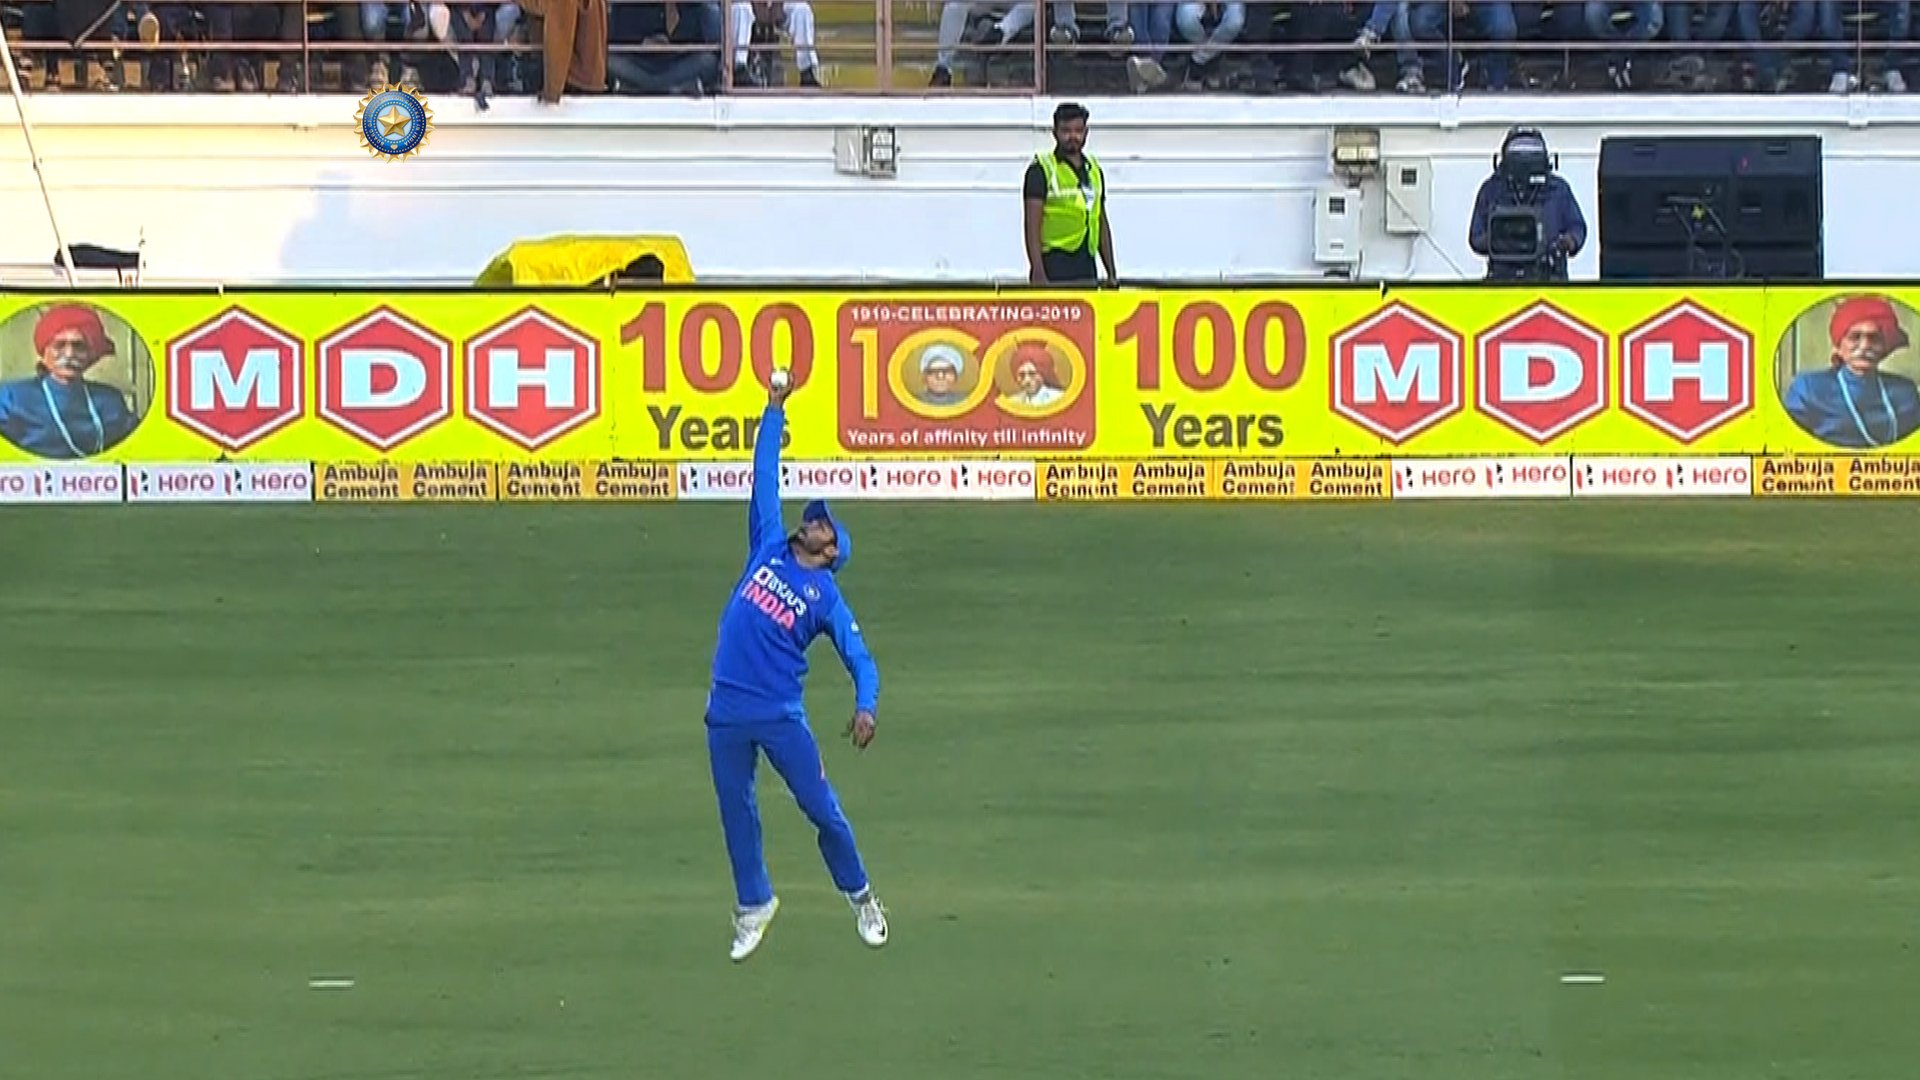 Manish Pandey takes catch